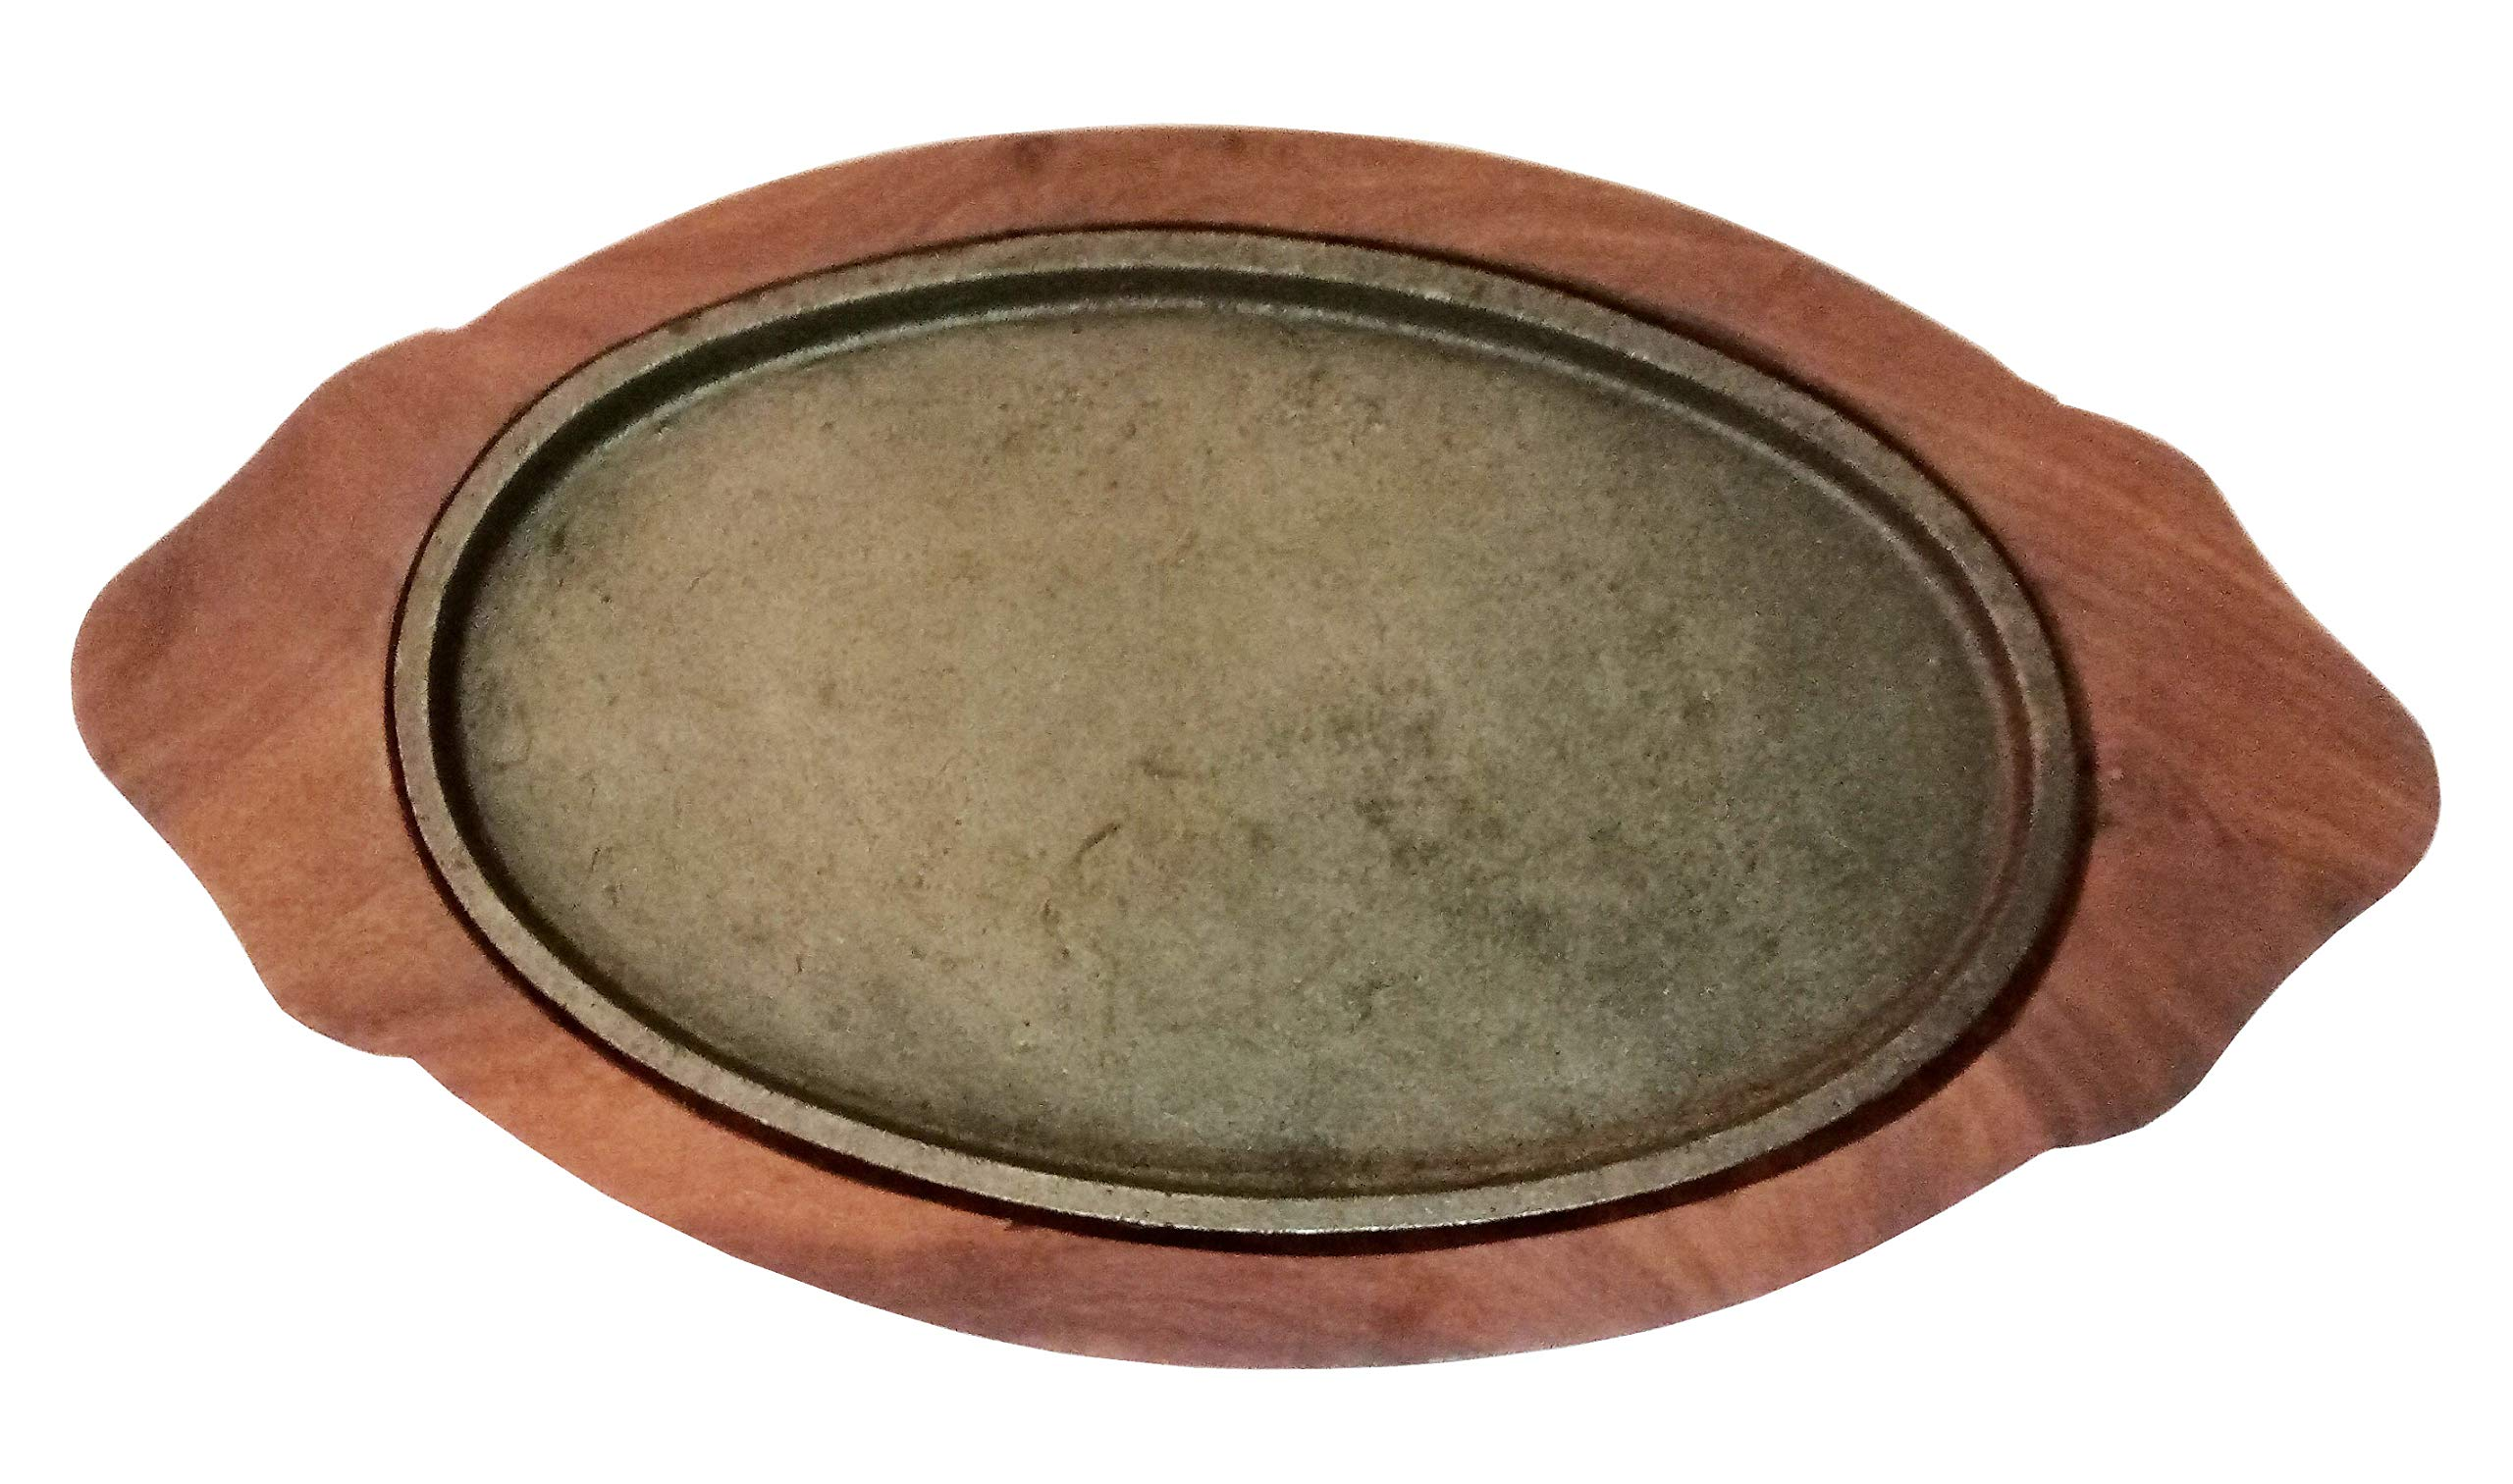 Sahishnu Online And Marketing Fajita Pan with Wooden Tray, Sizzling Brownie Sizzler Plate/Tray with Wooden Base Oval by Shradha Trading